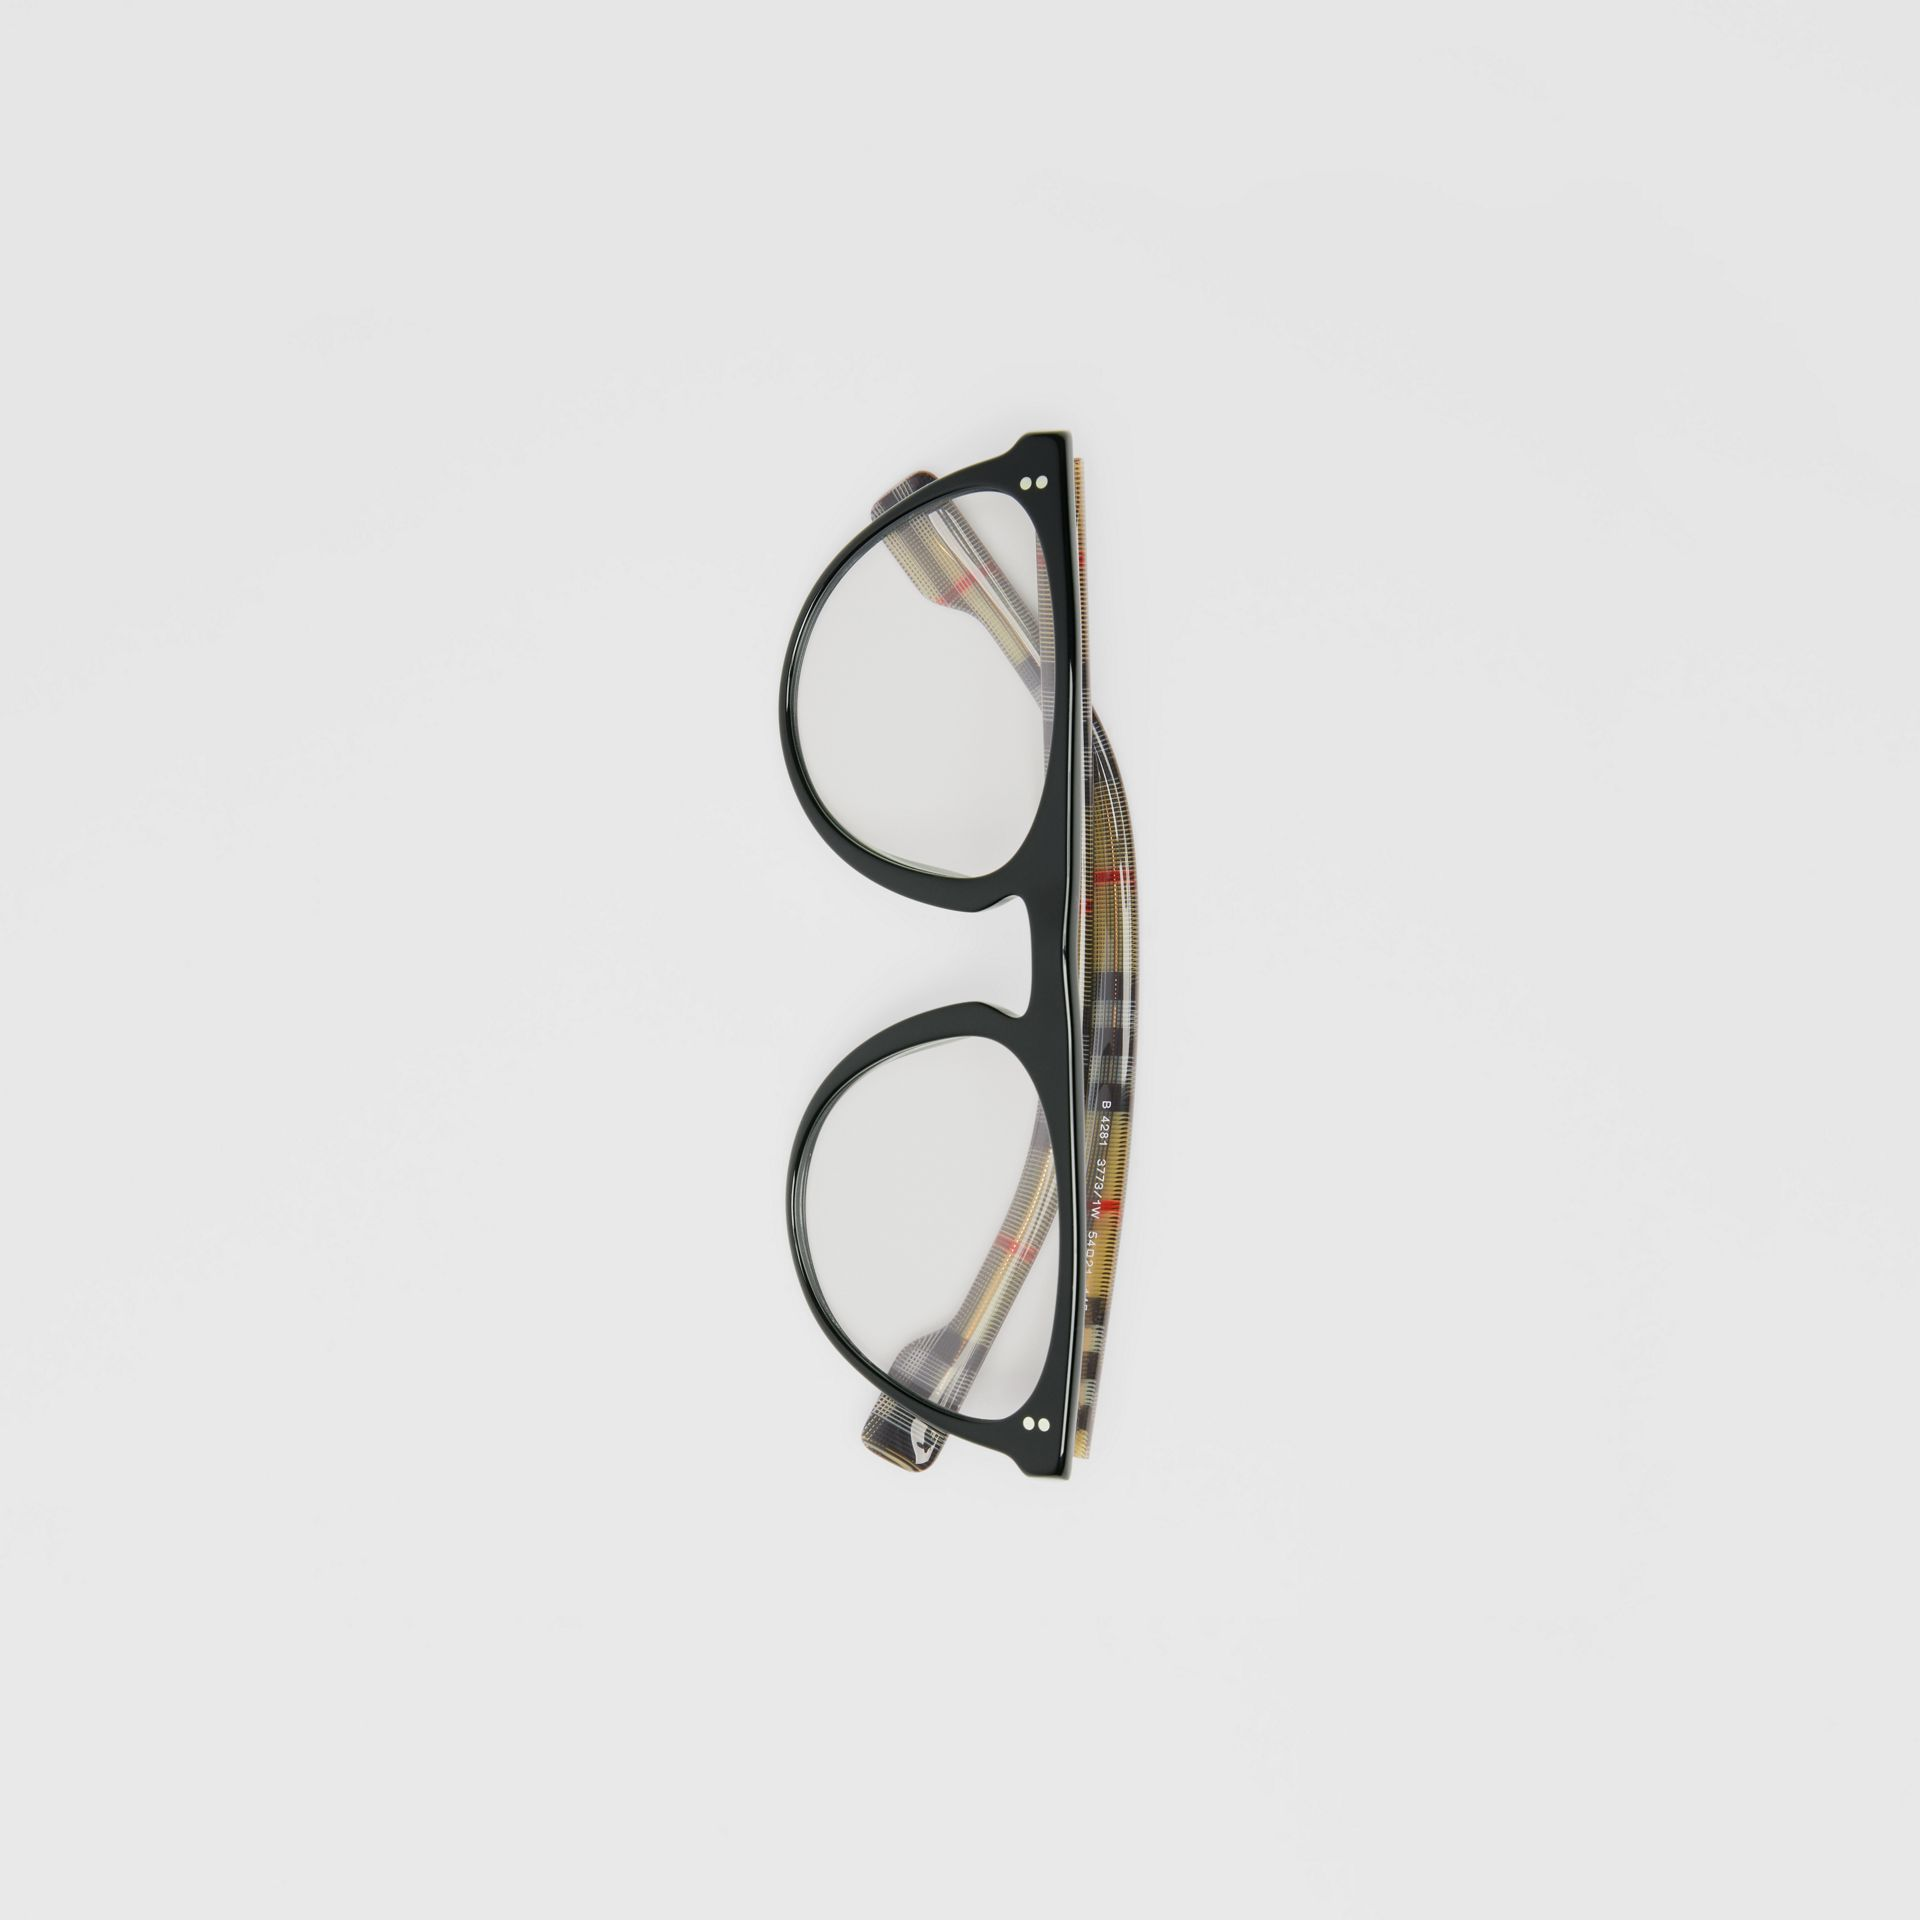 Keyhole D-shaped Optical Frames in Black - Men | Burberry - gallery image 2